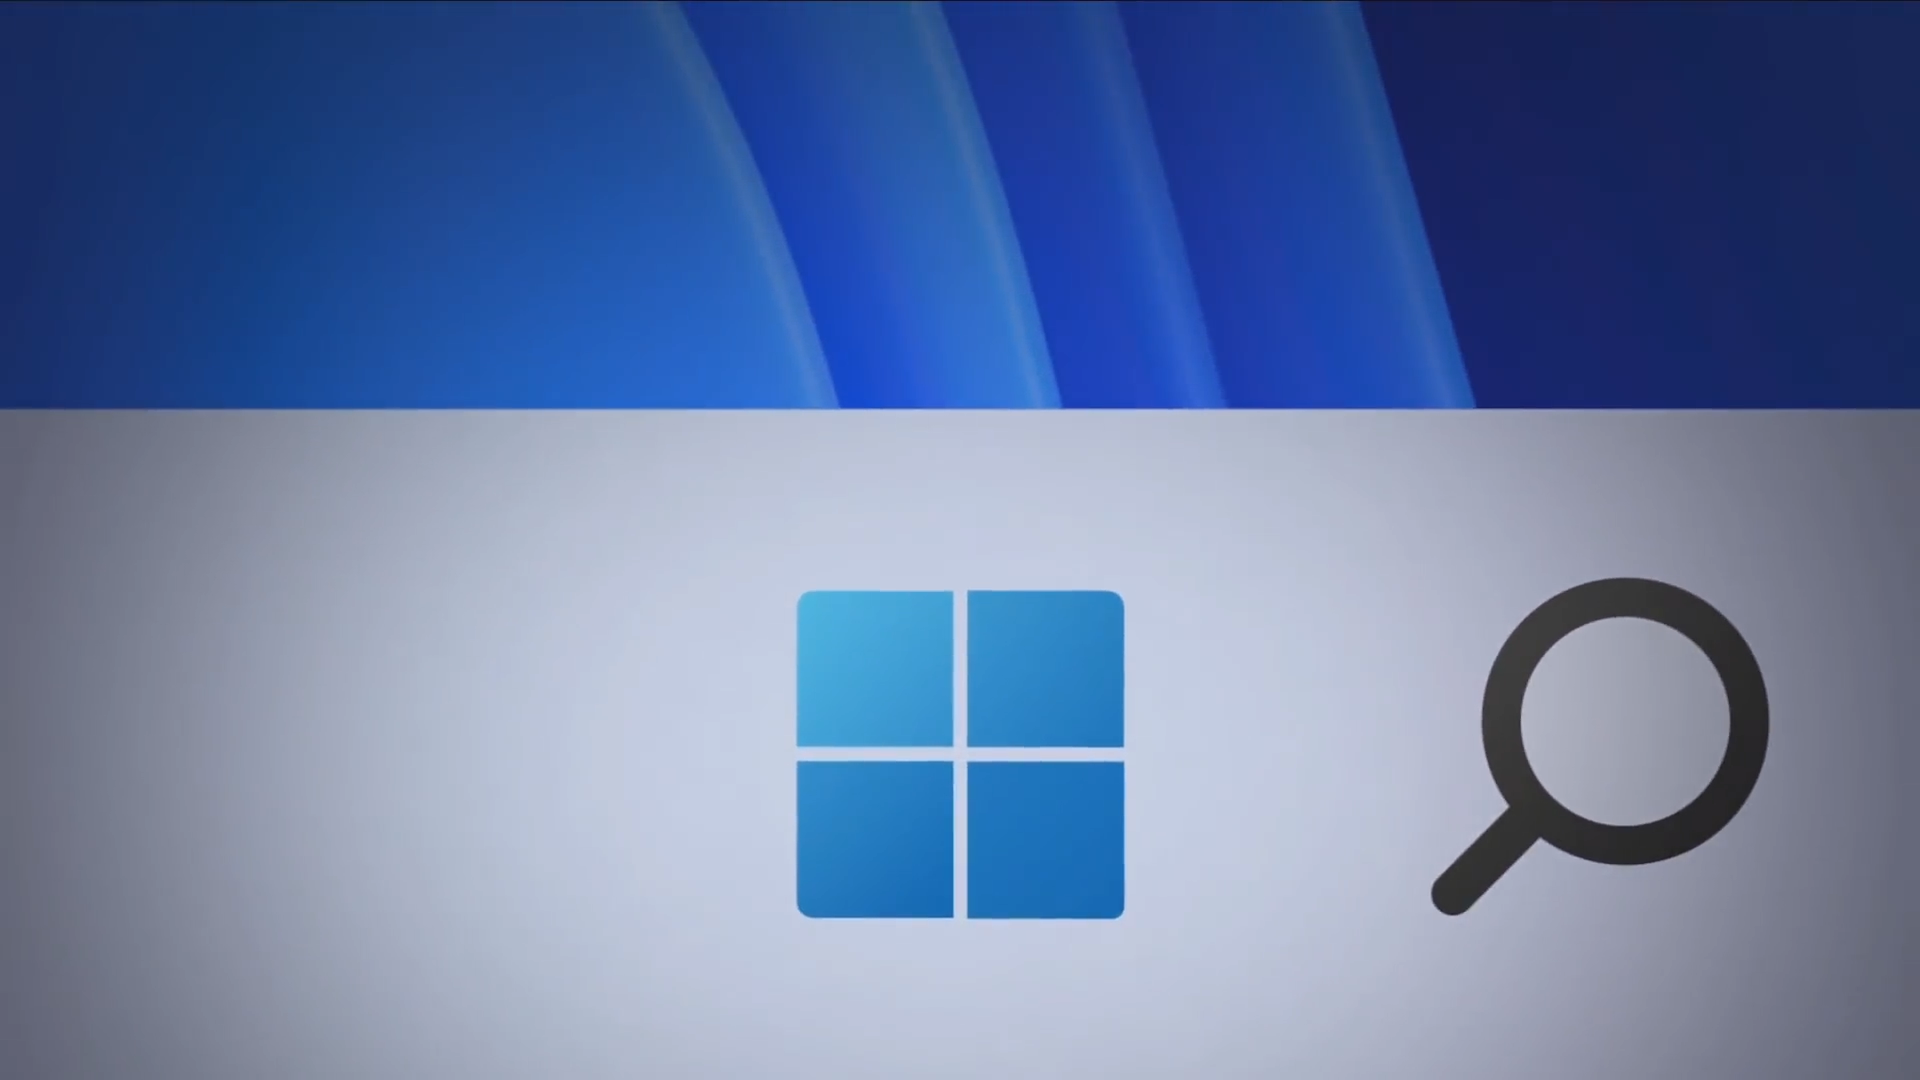 Video: Windows 11 gets a release date, iPhone 13 could get emergency satellite connectivity